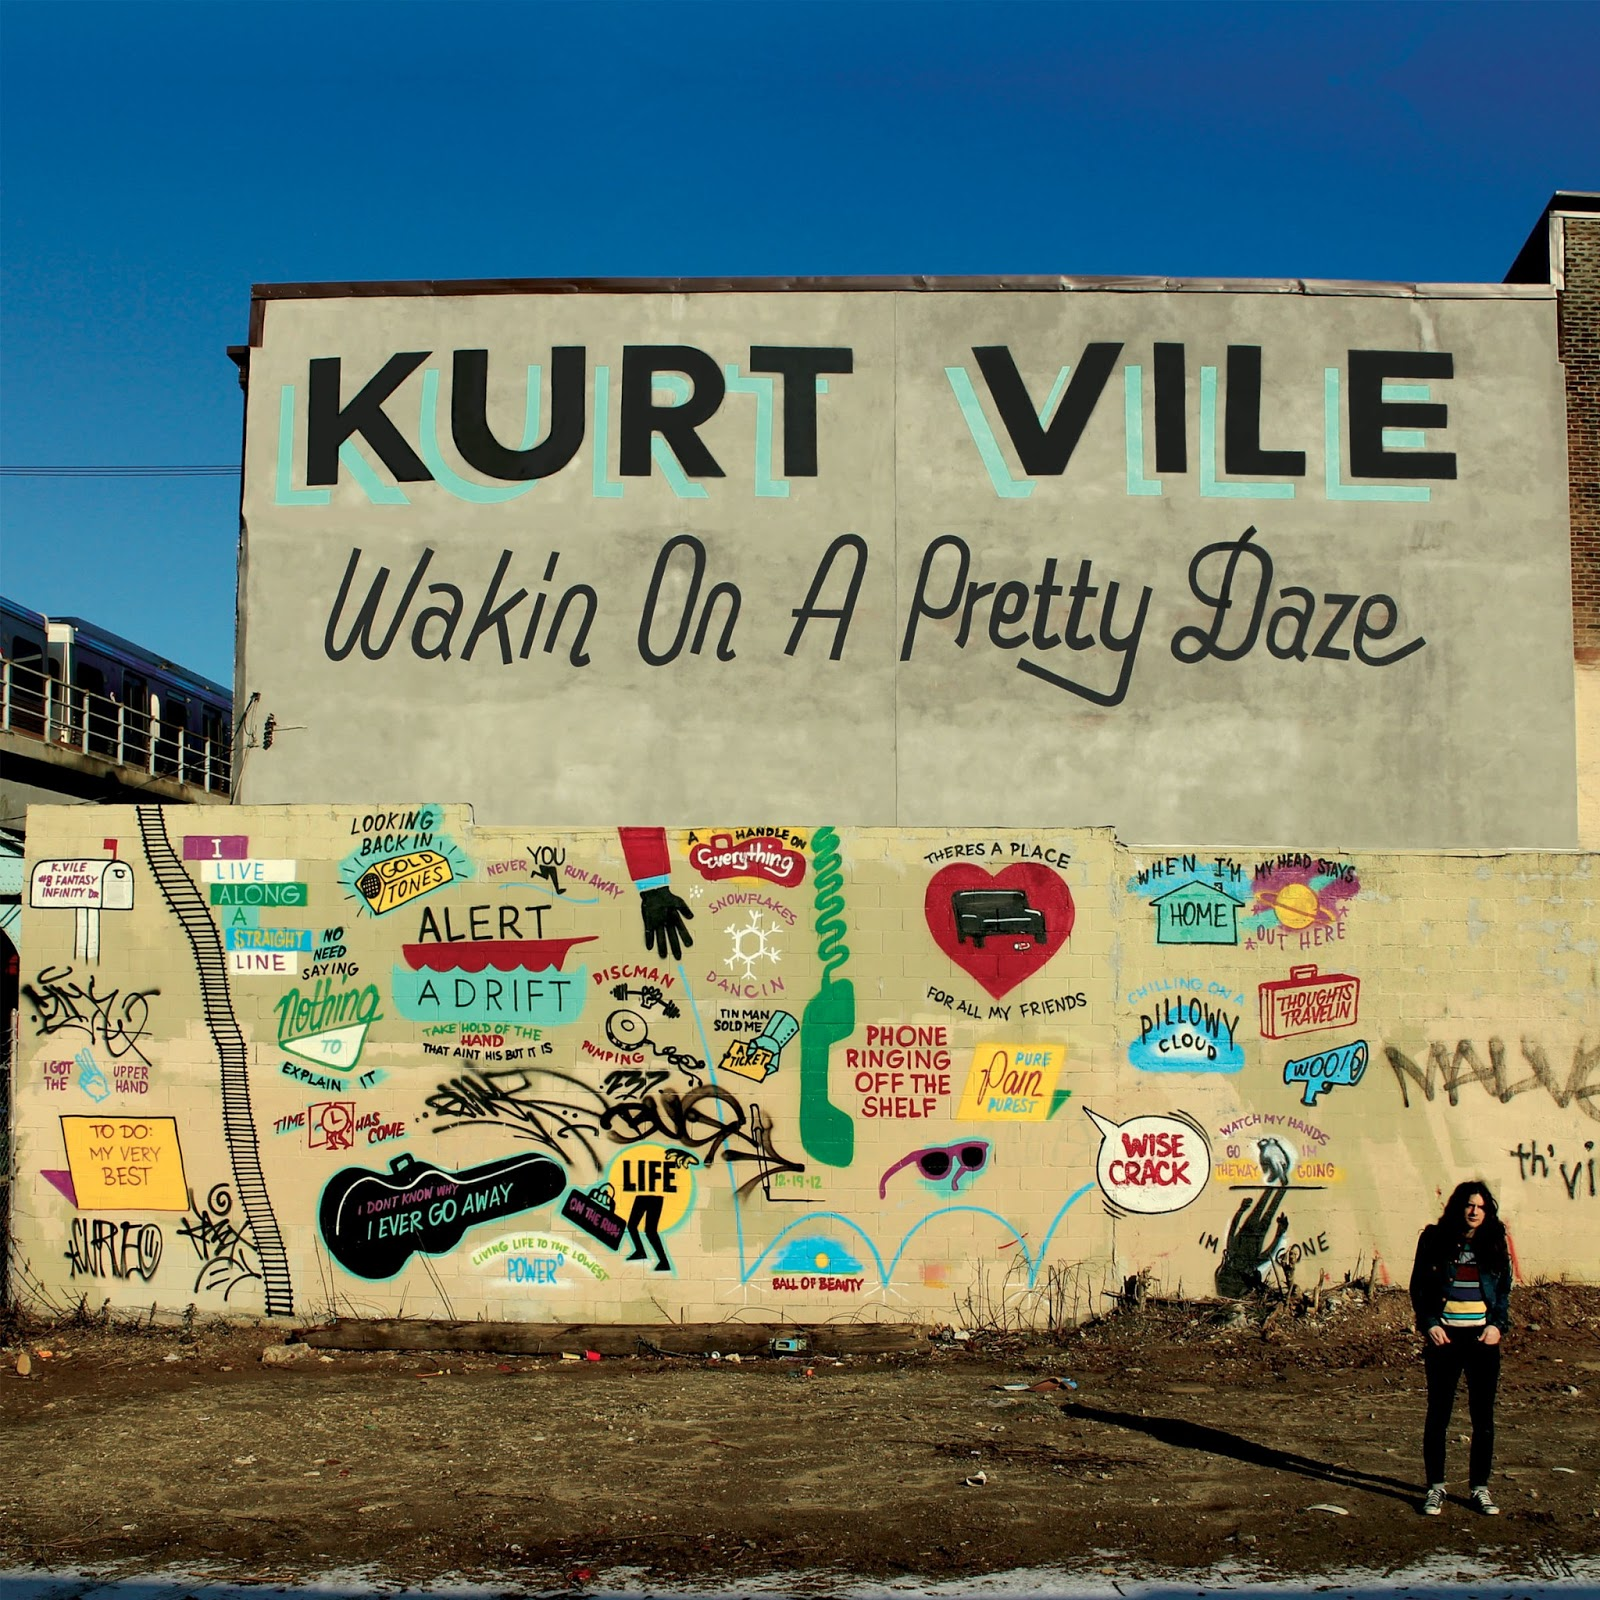 Kurt Vile - Wakin On A Pretty Daz (2013) [MULTI]